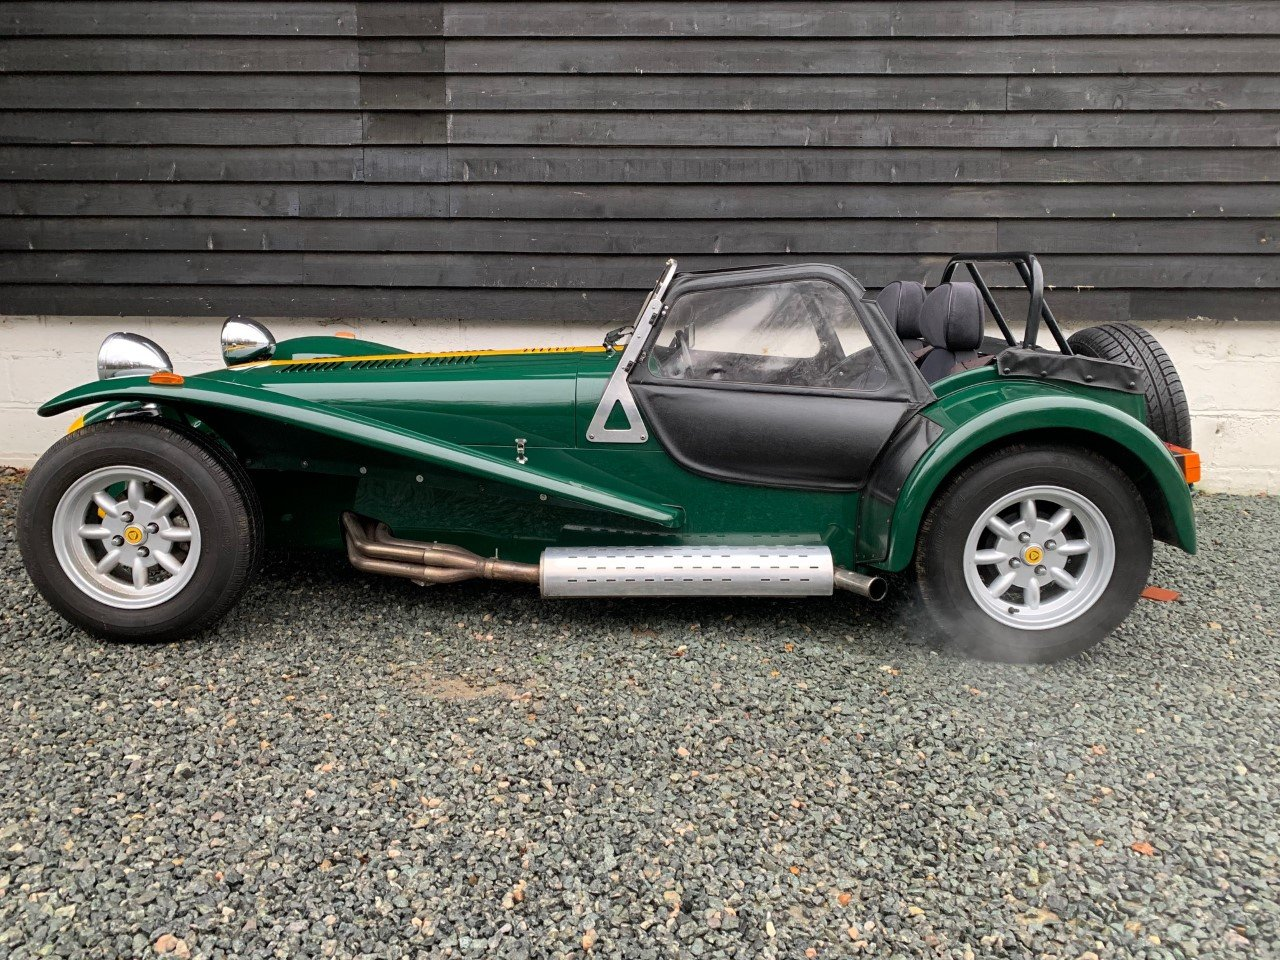 1998 Caterham Classic 1.6 VX Vauxhall 100bhp 5 speed For Sale (picture 4 of 6)